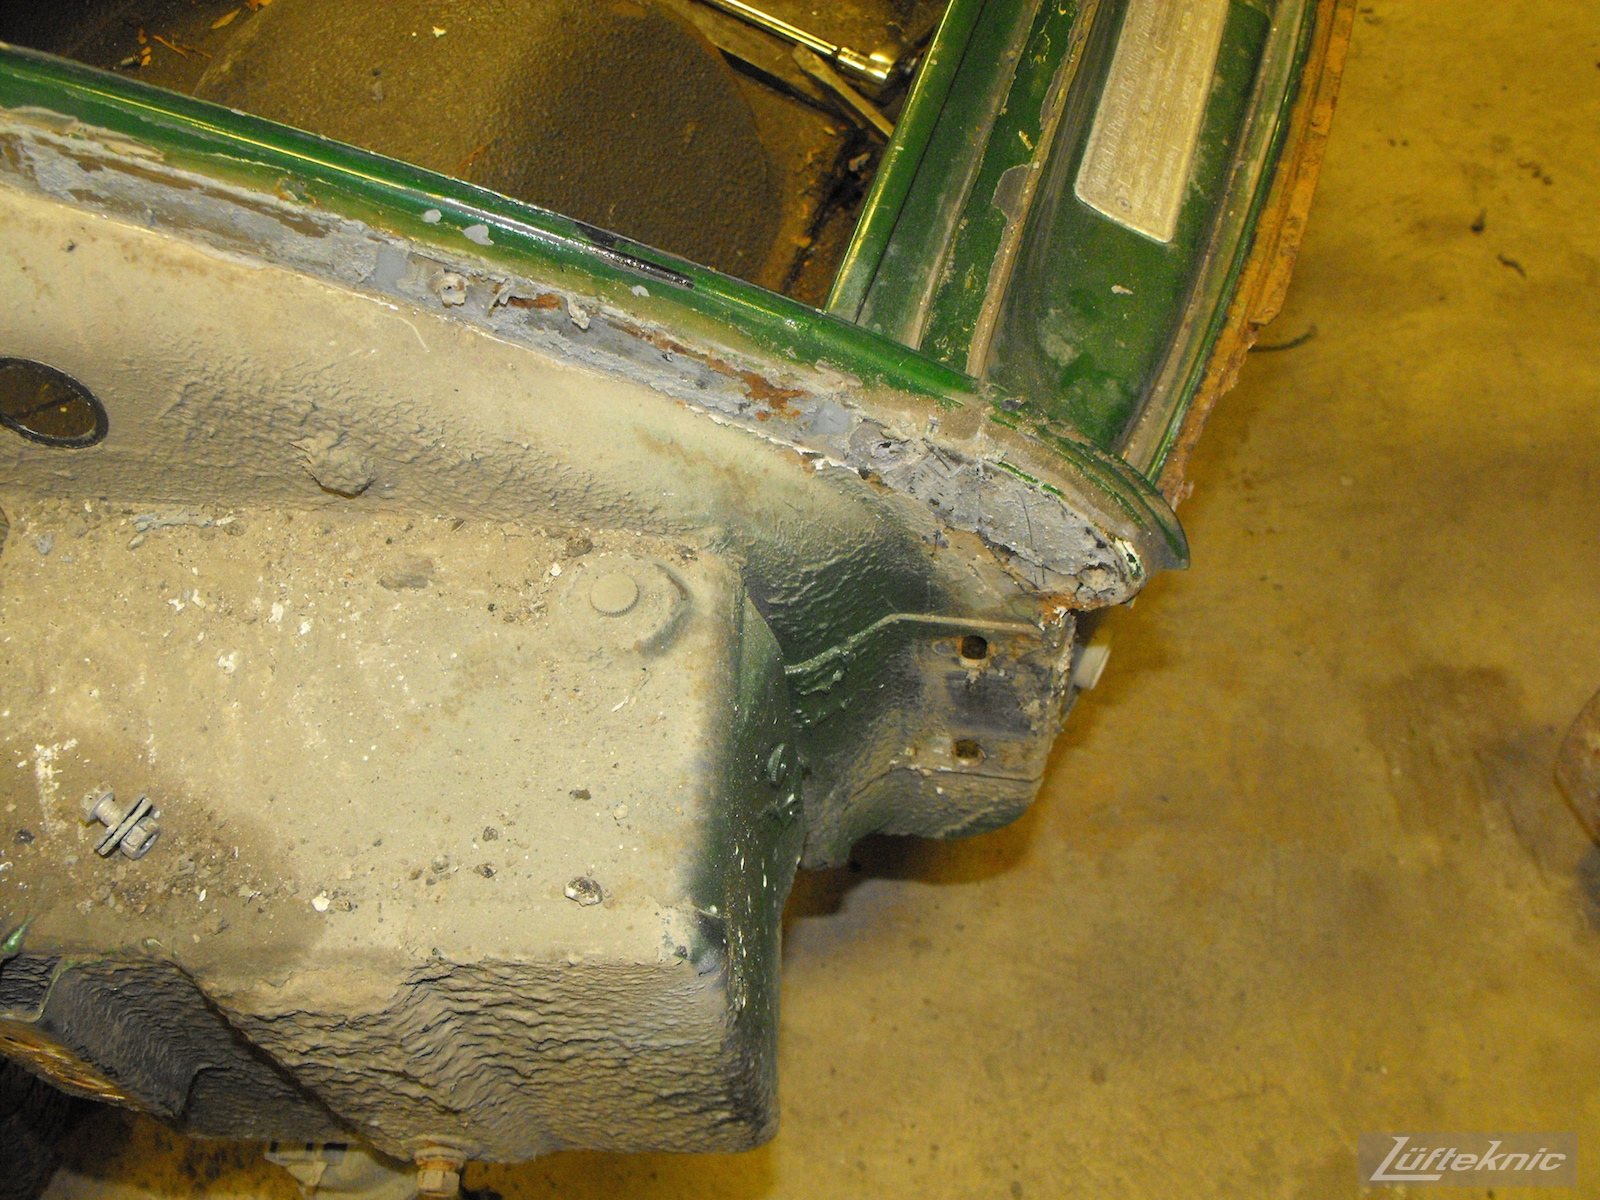 Front chassis wear and some rust on an Irish Green Porsche 912 undergoing restoration at Lufteknic.